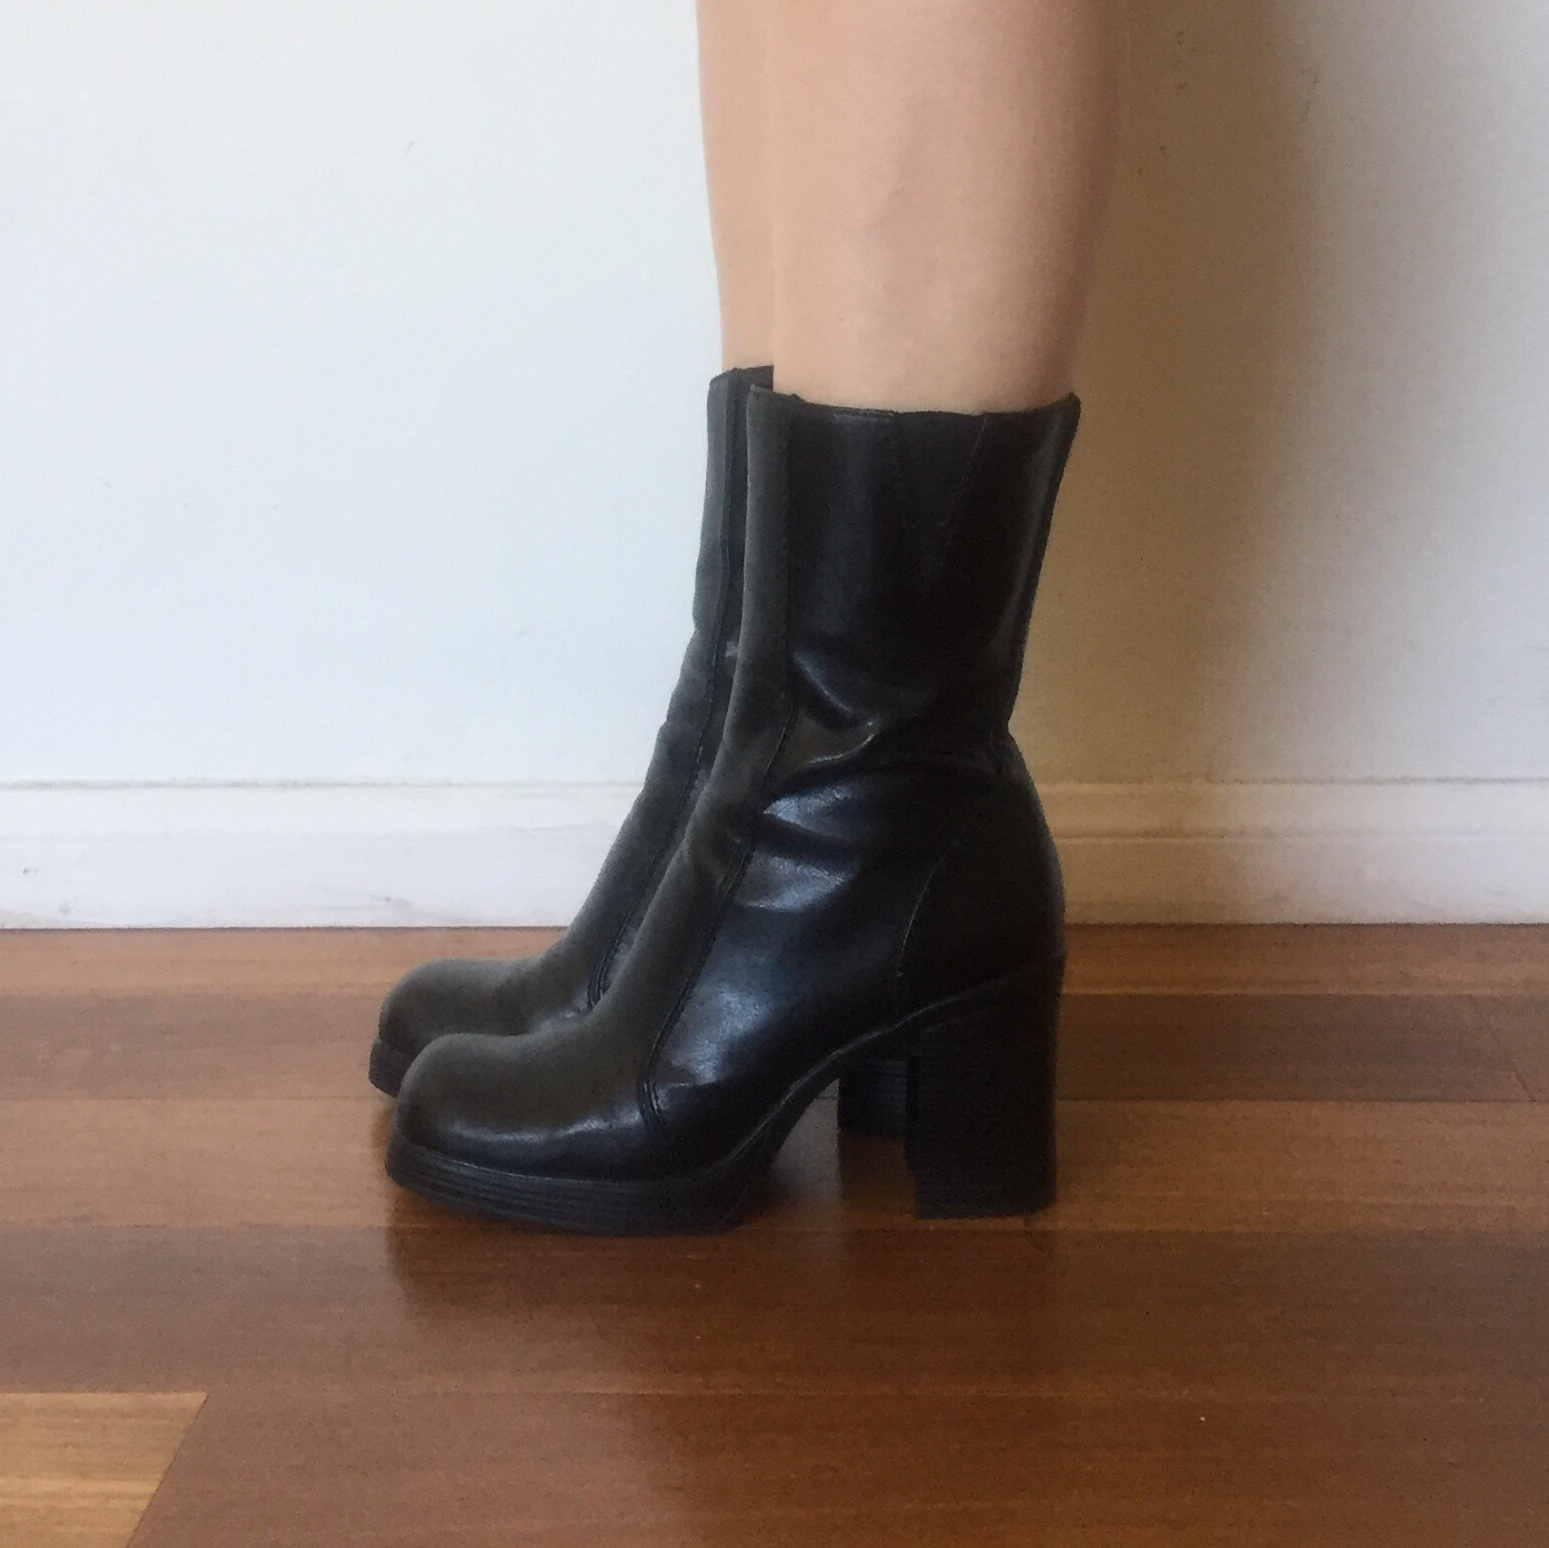 65847577e8bdd Vintage 90s Black Platform Boots Vegan Leather... - Depop